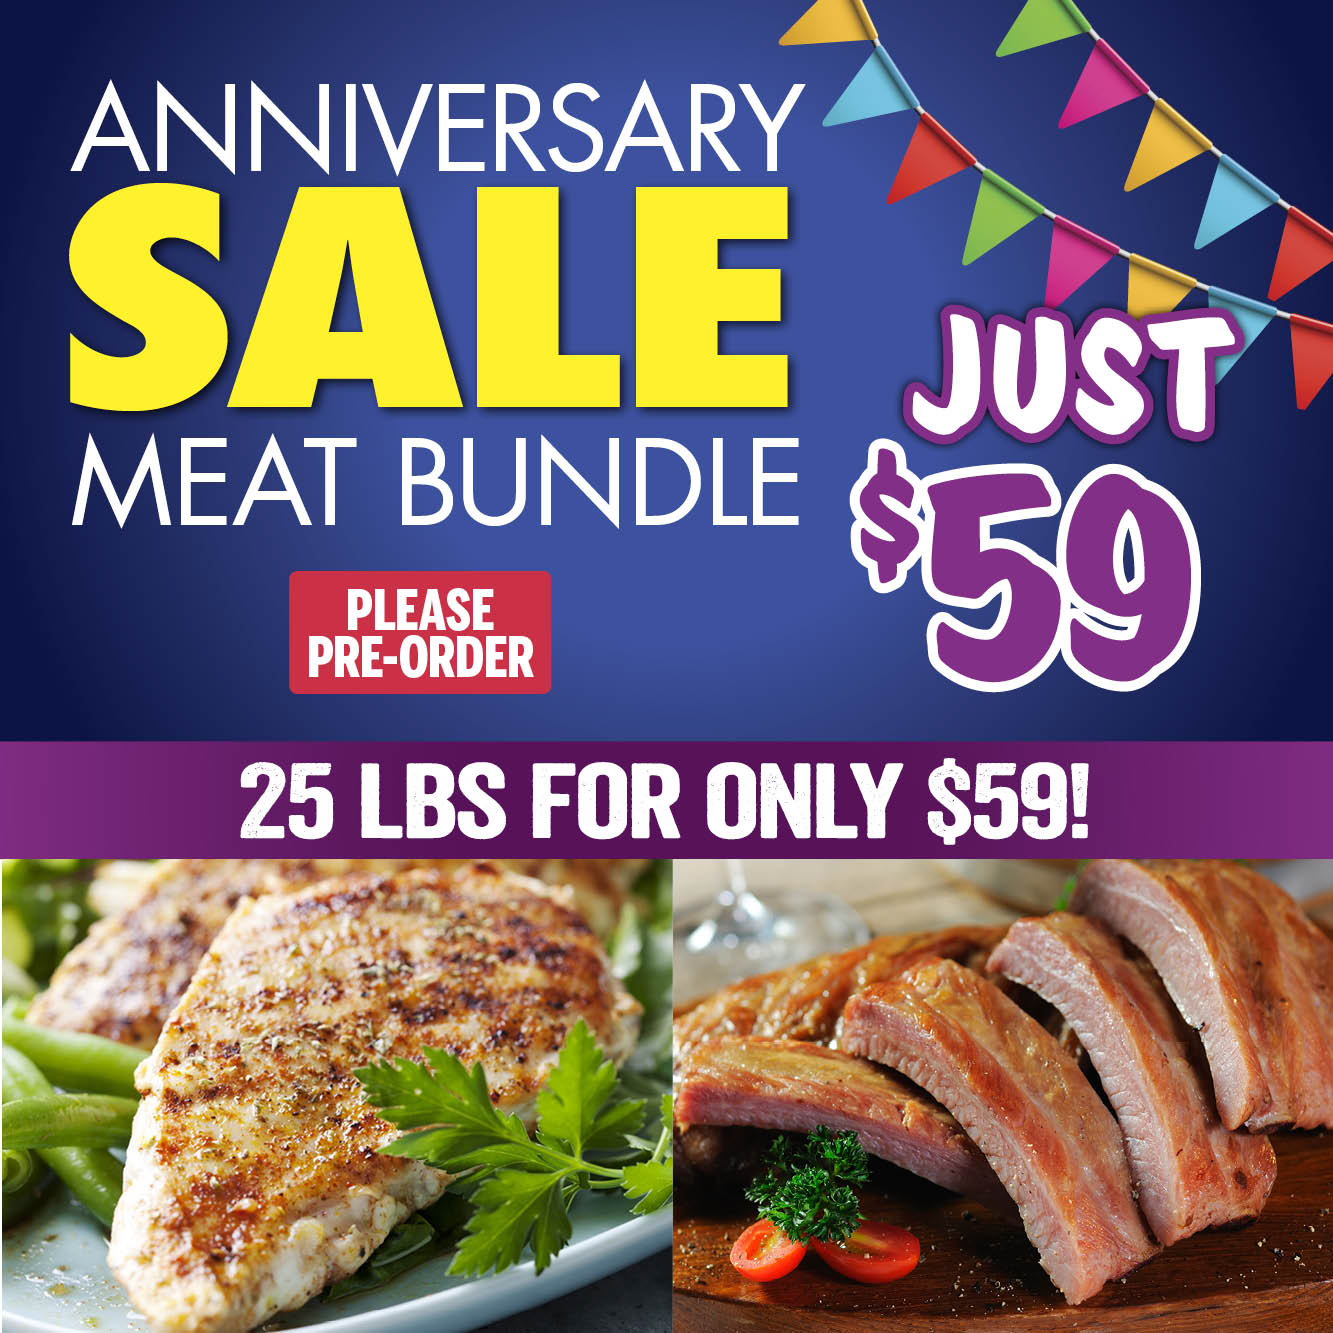 Anniversary Meat Bundle